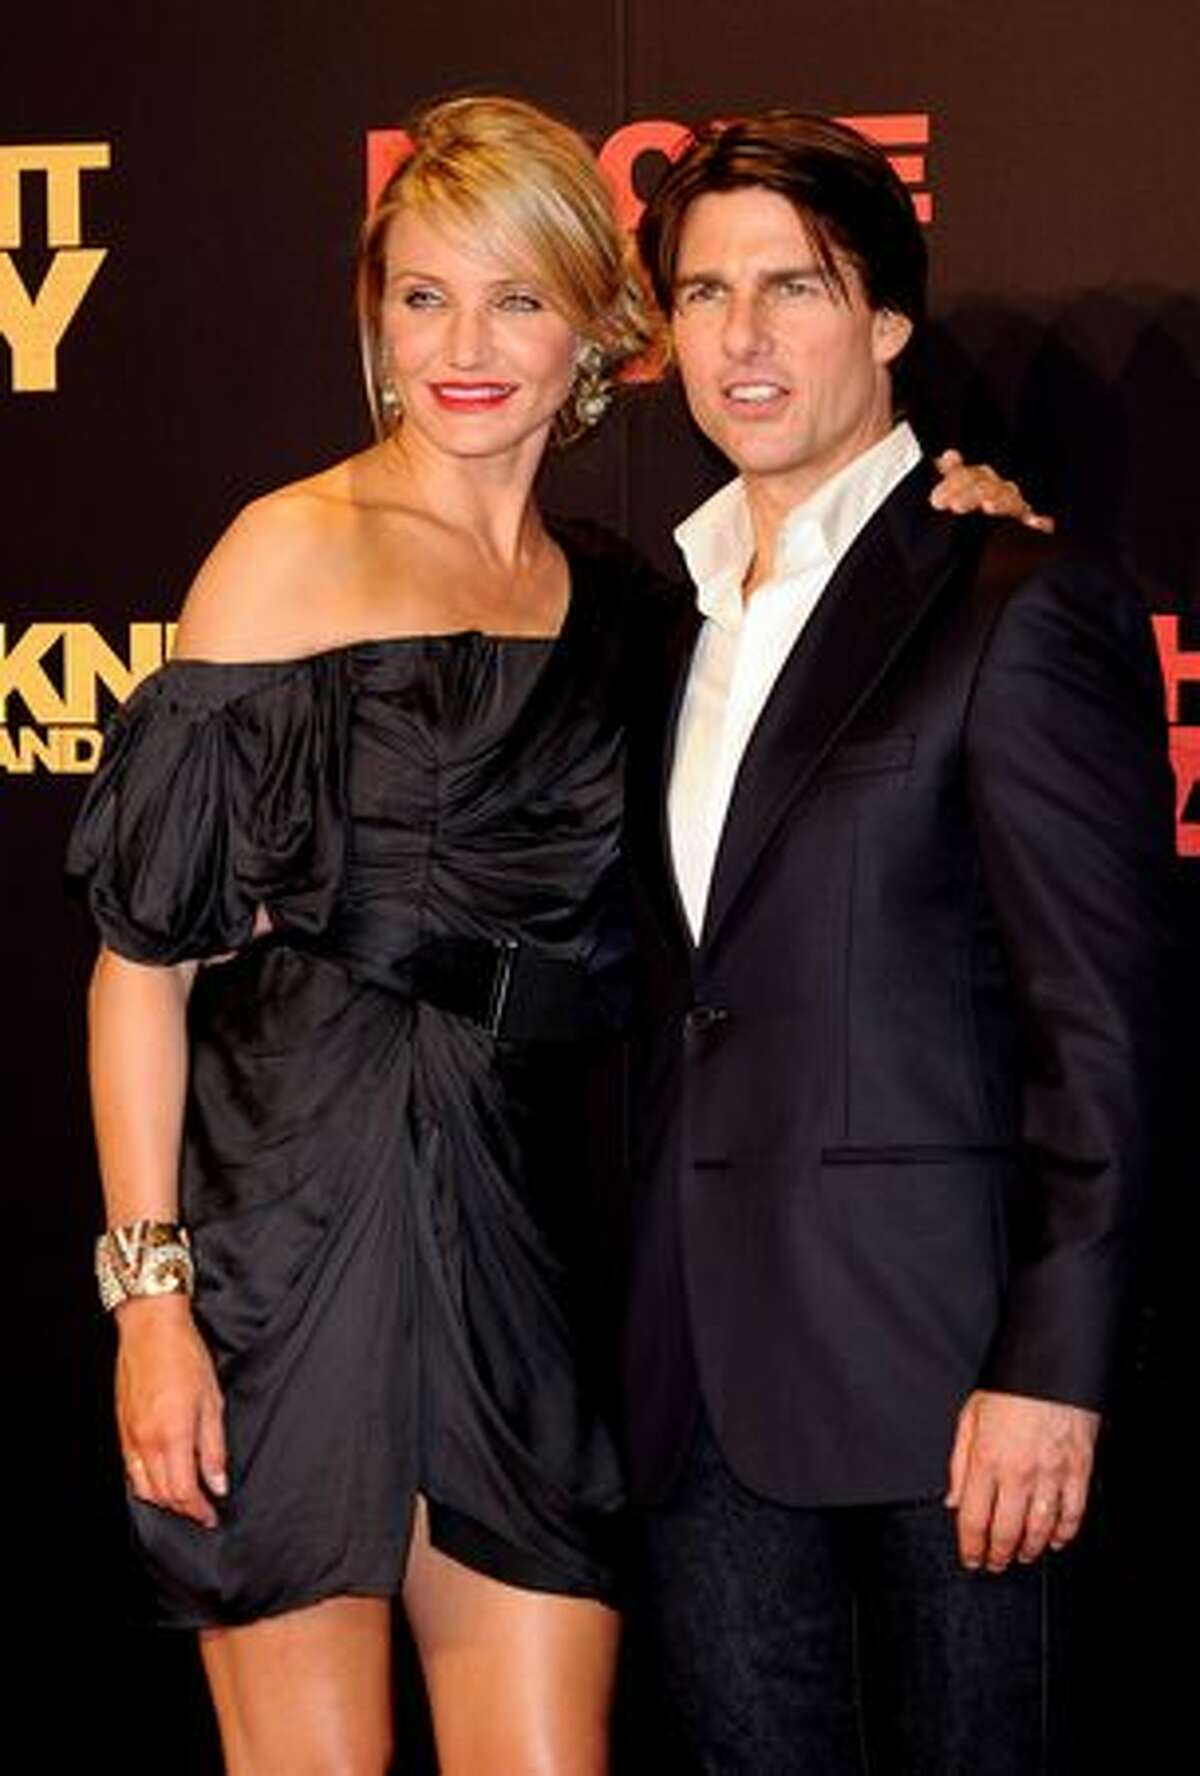 Tom Cruise and Cameron Diaz attend